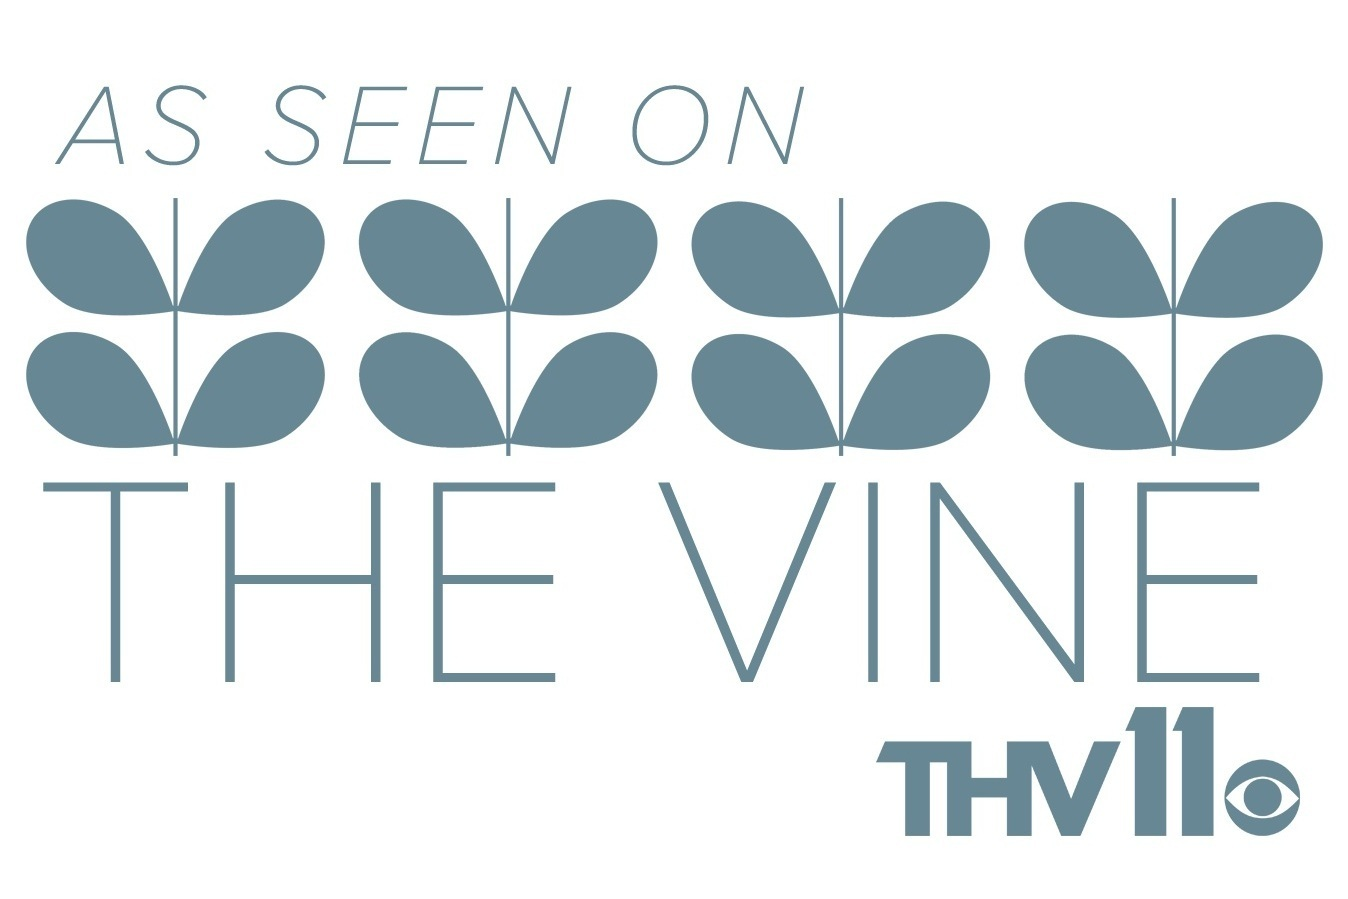 Vine interviews! - Your Restoration Destination! You've seen us on KTHV before and after the storms! We've served Arkansas homeowners and businesses for more than 40 years. Let us help protect your home.